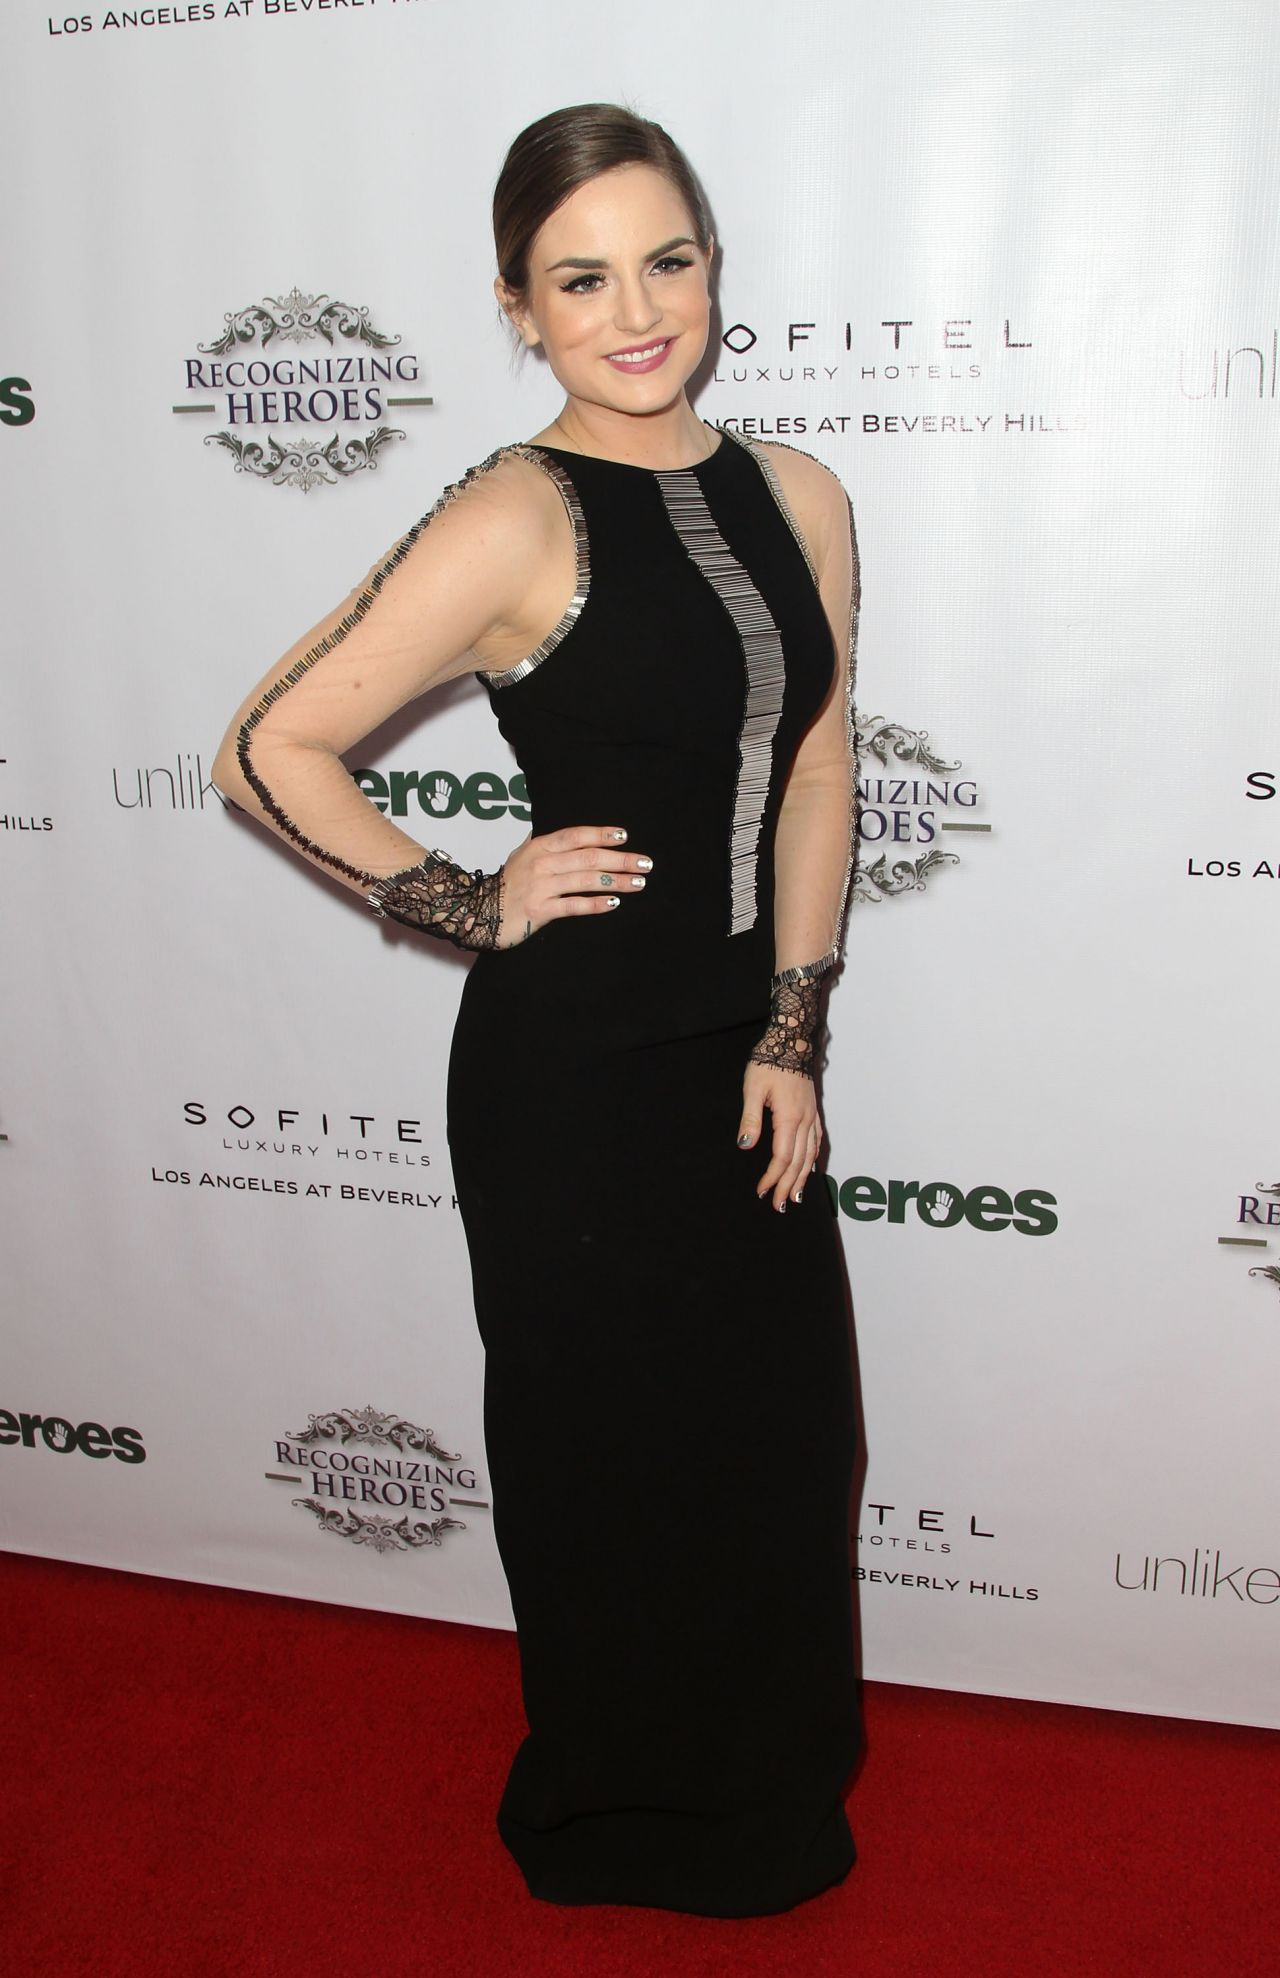 Joanna JoJo Levesque – 2014 Unlikely Heroes Awards Dinner And Gala in Los Angeles